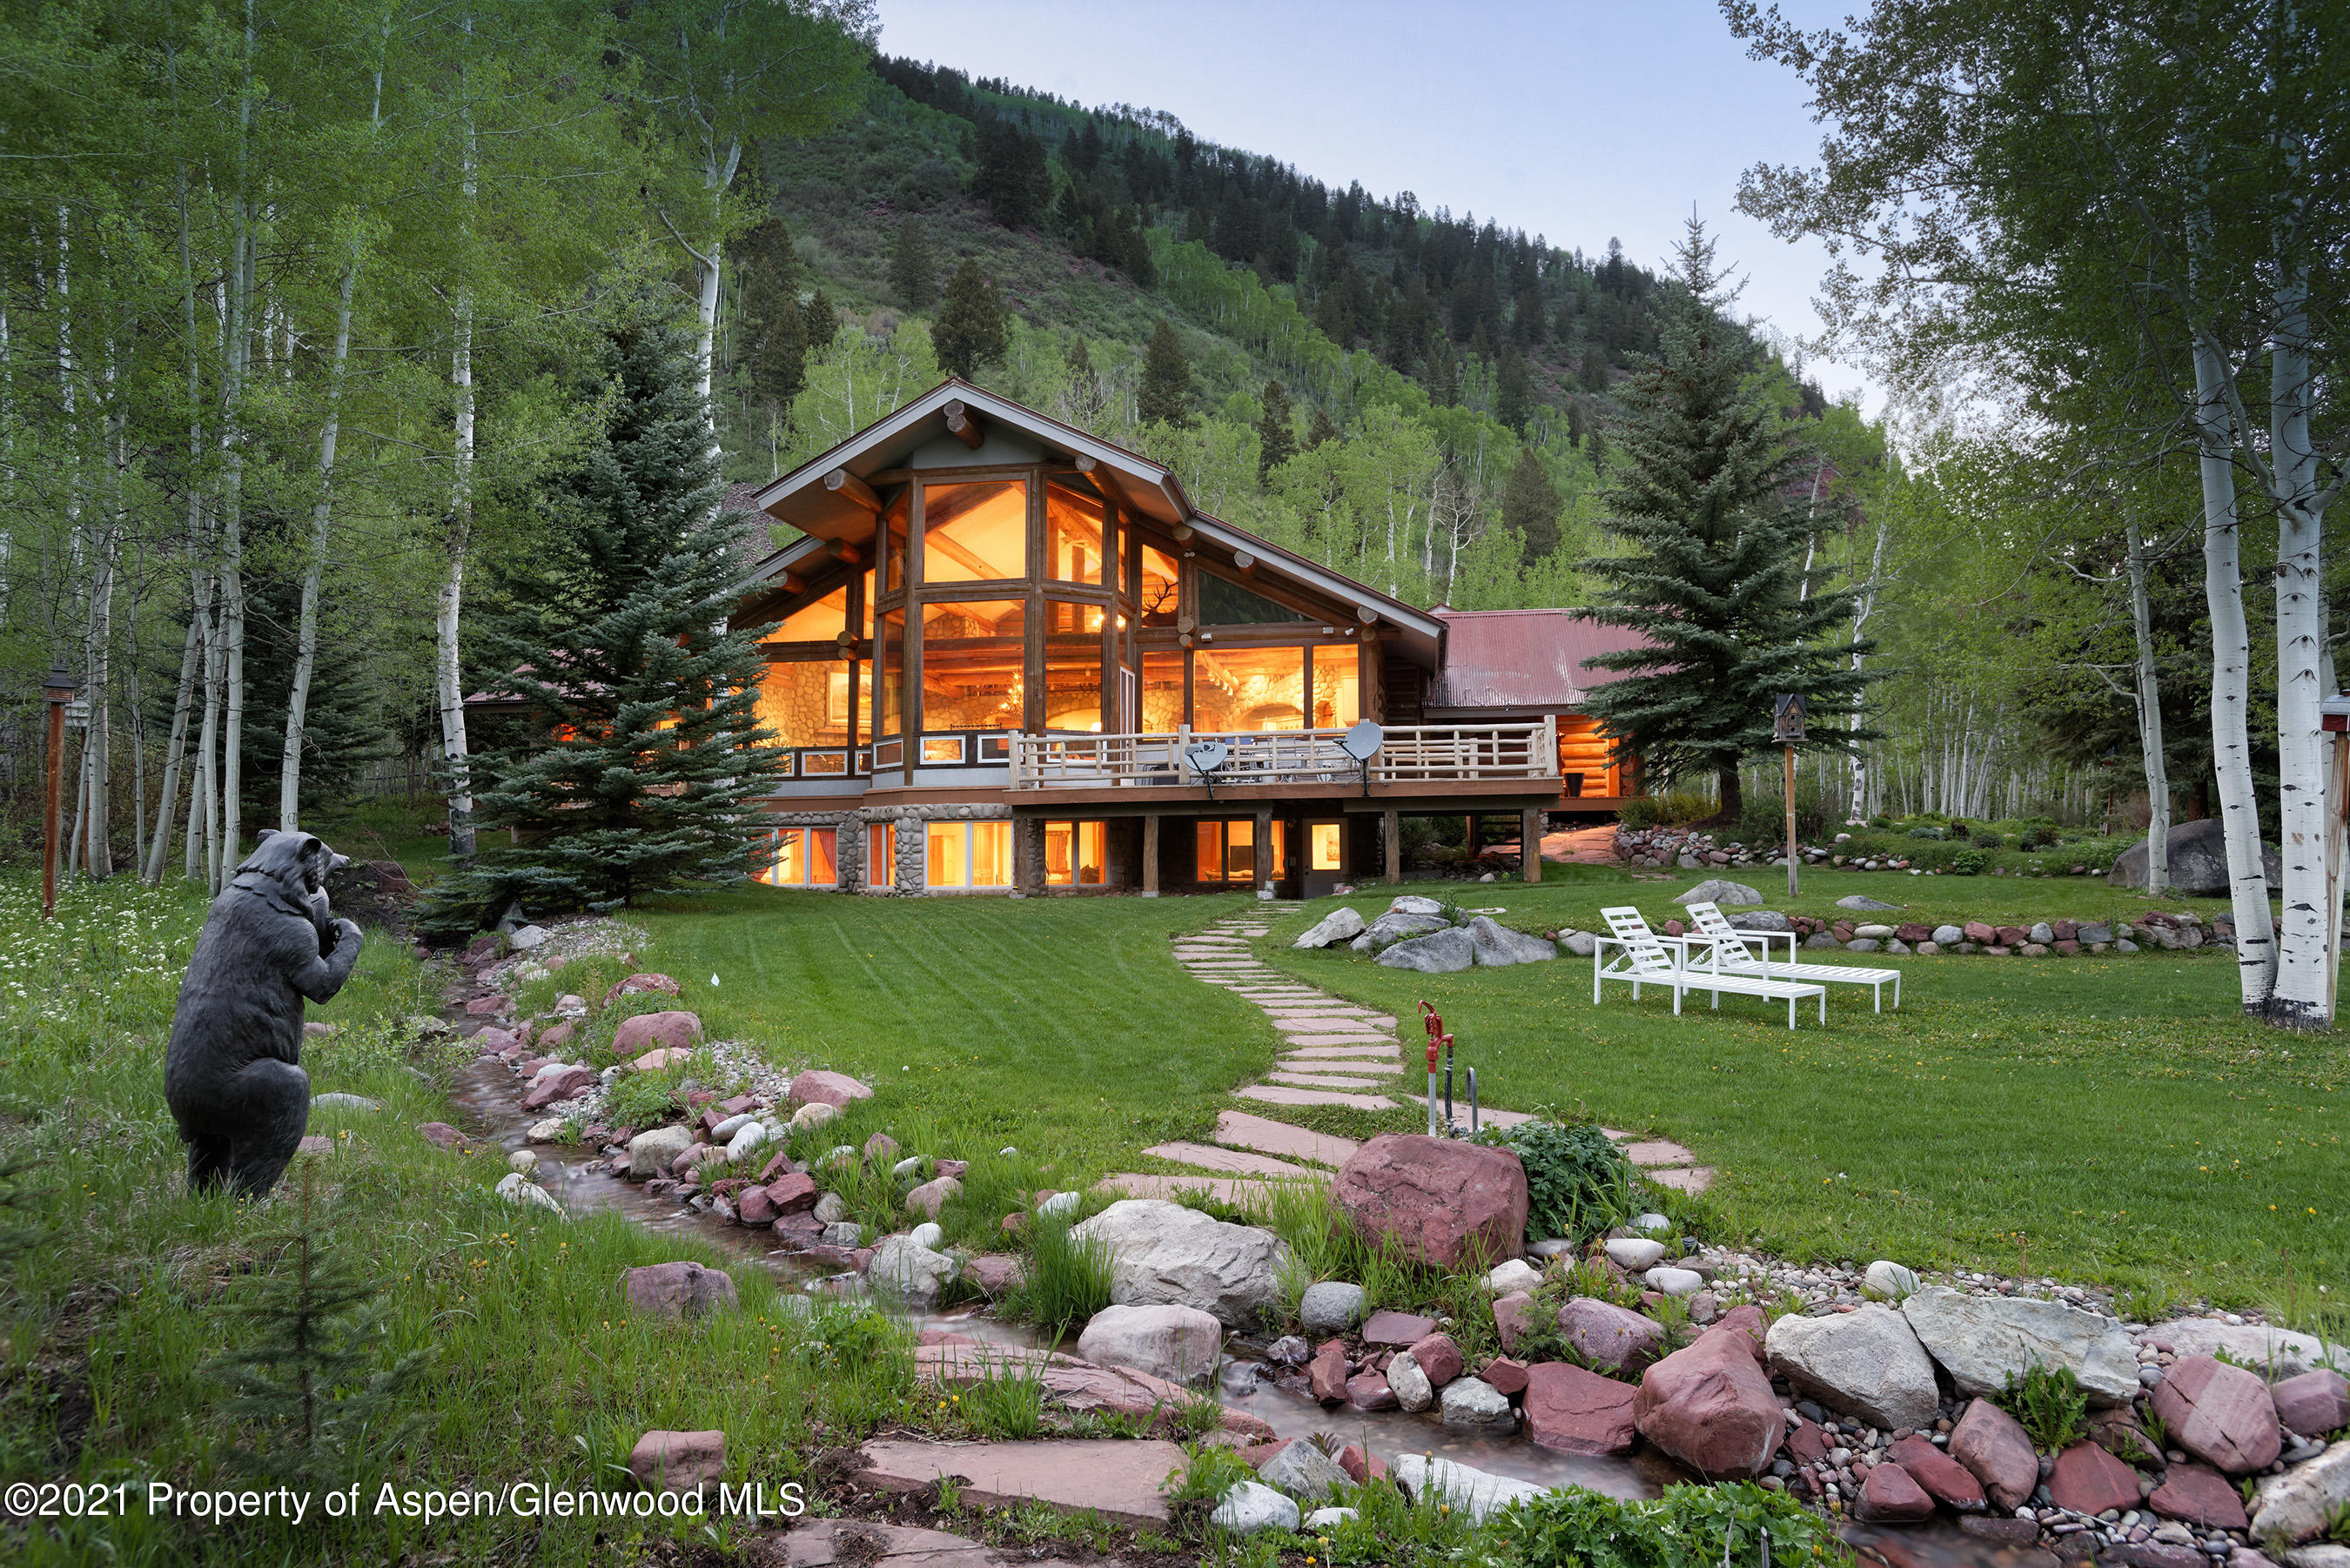 Step into this inviting 5 bedroom, 5.5 bath, mountain estate, just 10 minutes from downtown Aspen... and feel immediately at home! The spectacular Great Room is the heart of the home with its vaulted beam ceiling, multiple sitting areas, dramatic stone fireplace, dining area, gourmet kitchen, and deck overlooking your private pond. Large windows throughout brighten the traditional log home warmth. Impressive master bedroom suite includes large sitting area with huge picture windows, fabulous master bath with his and her walk-in closets, multiple vanities, separate makeup station, and rainfall shower with multiple heads, all nestled among the private aspen groves.  Separate office, home gym, 3-car oversized garage for the toys, water rights, over 3 acres of country privacy, and much more!